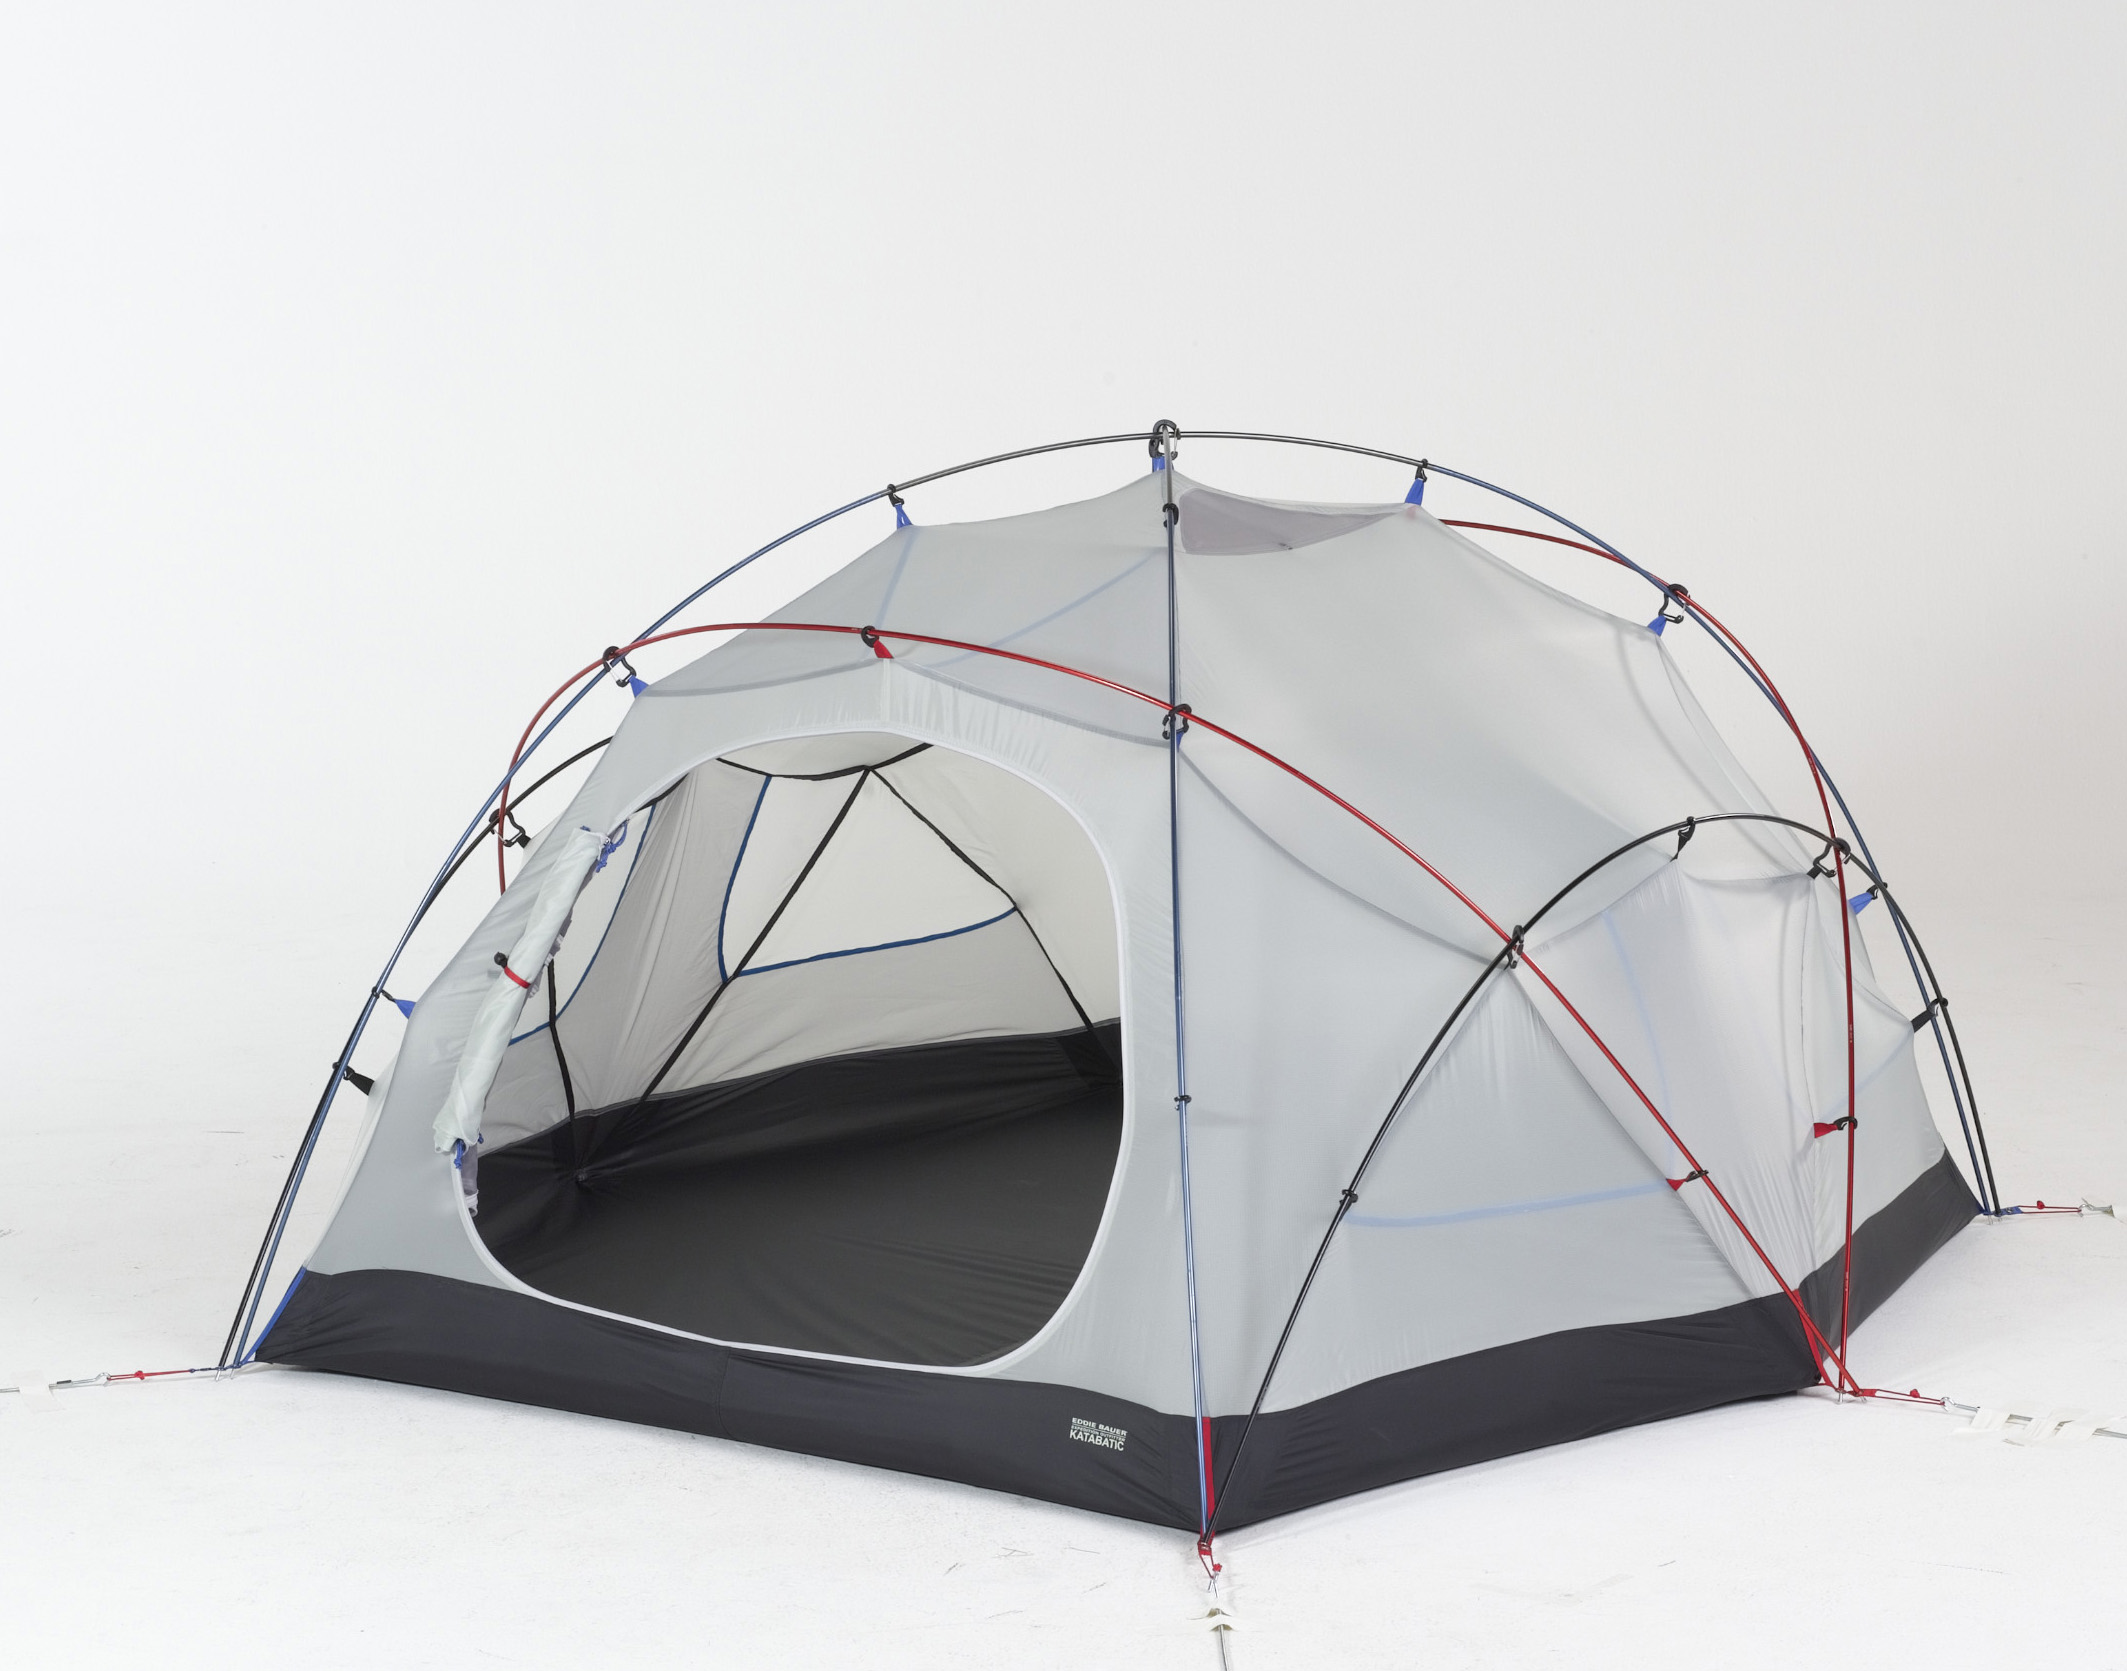 Katabatic Tent without rain fly